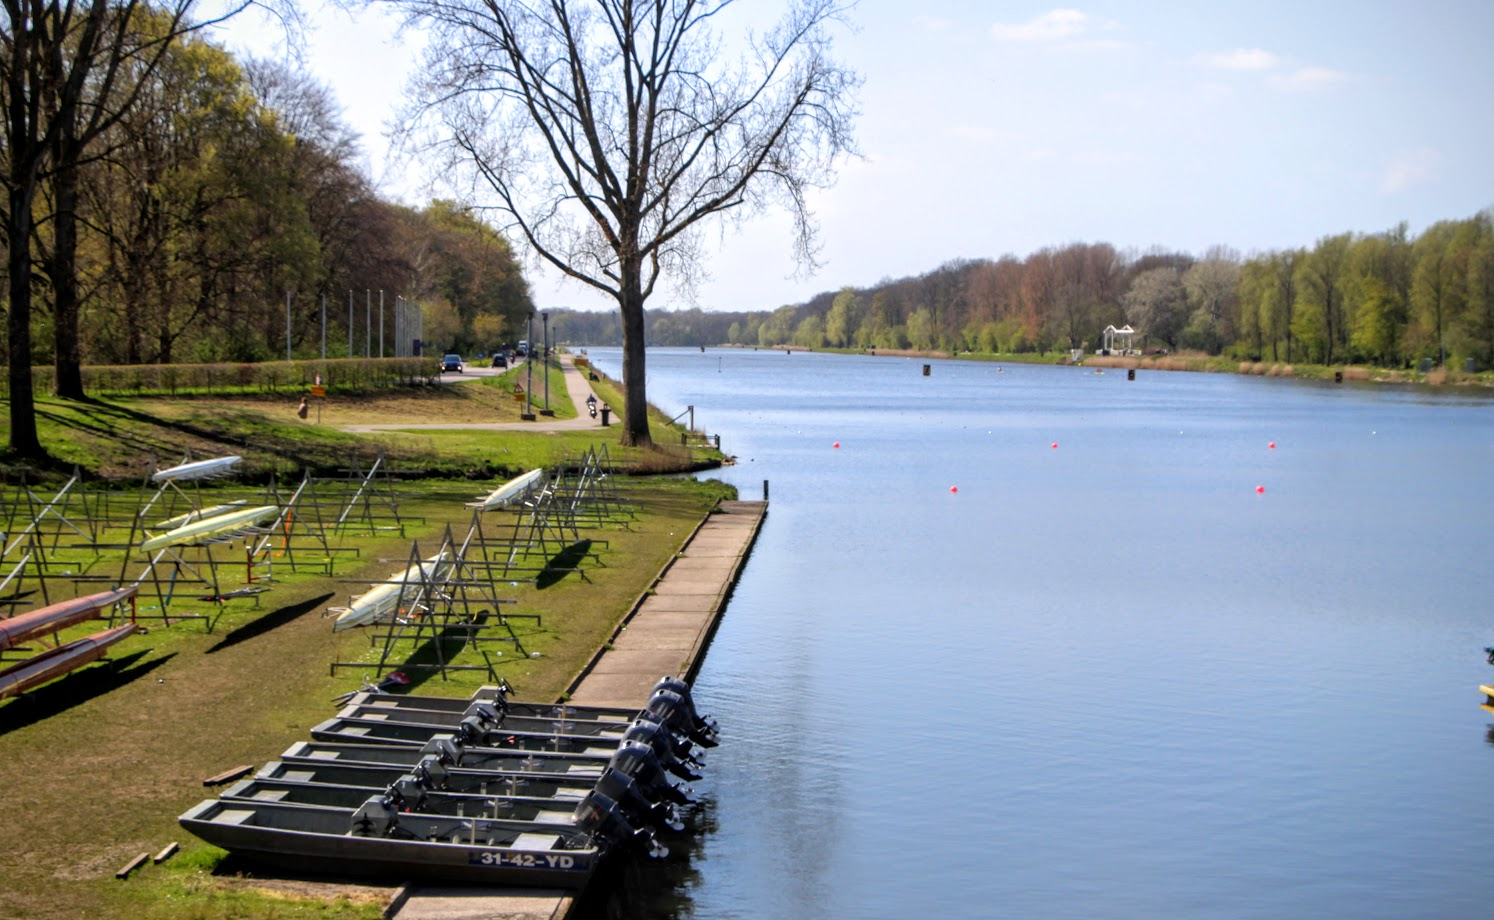 Amsterdamse Bos Amsterdam, Amsterdamse Bos: A Bike Tour Into The Amsterdam Woods